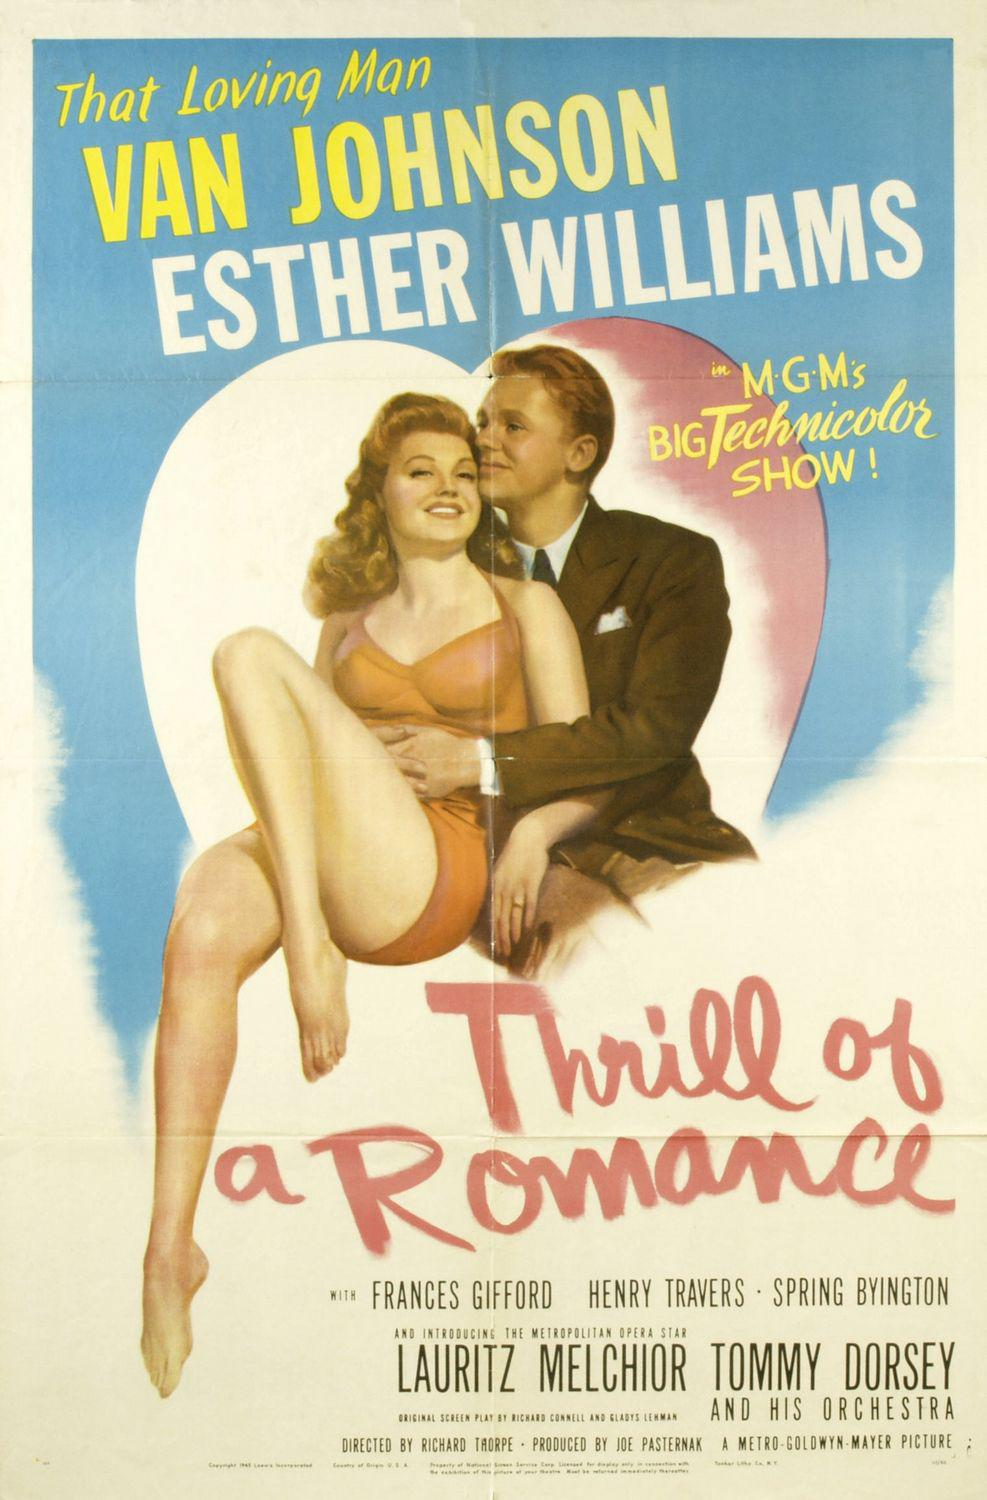 Thrill of a Romance - Van Johnson - Ester Williams - old poster - love story